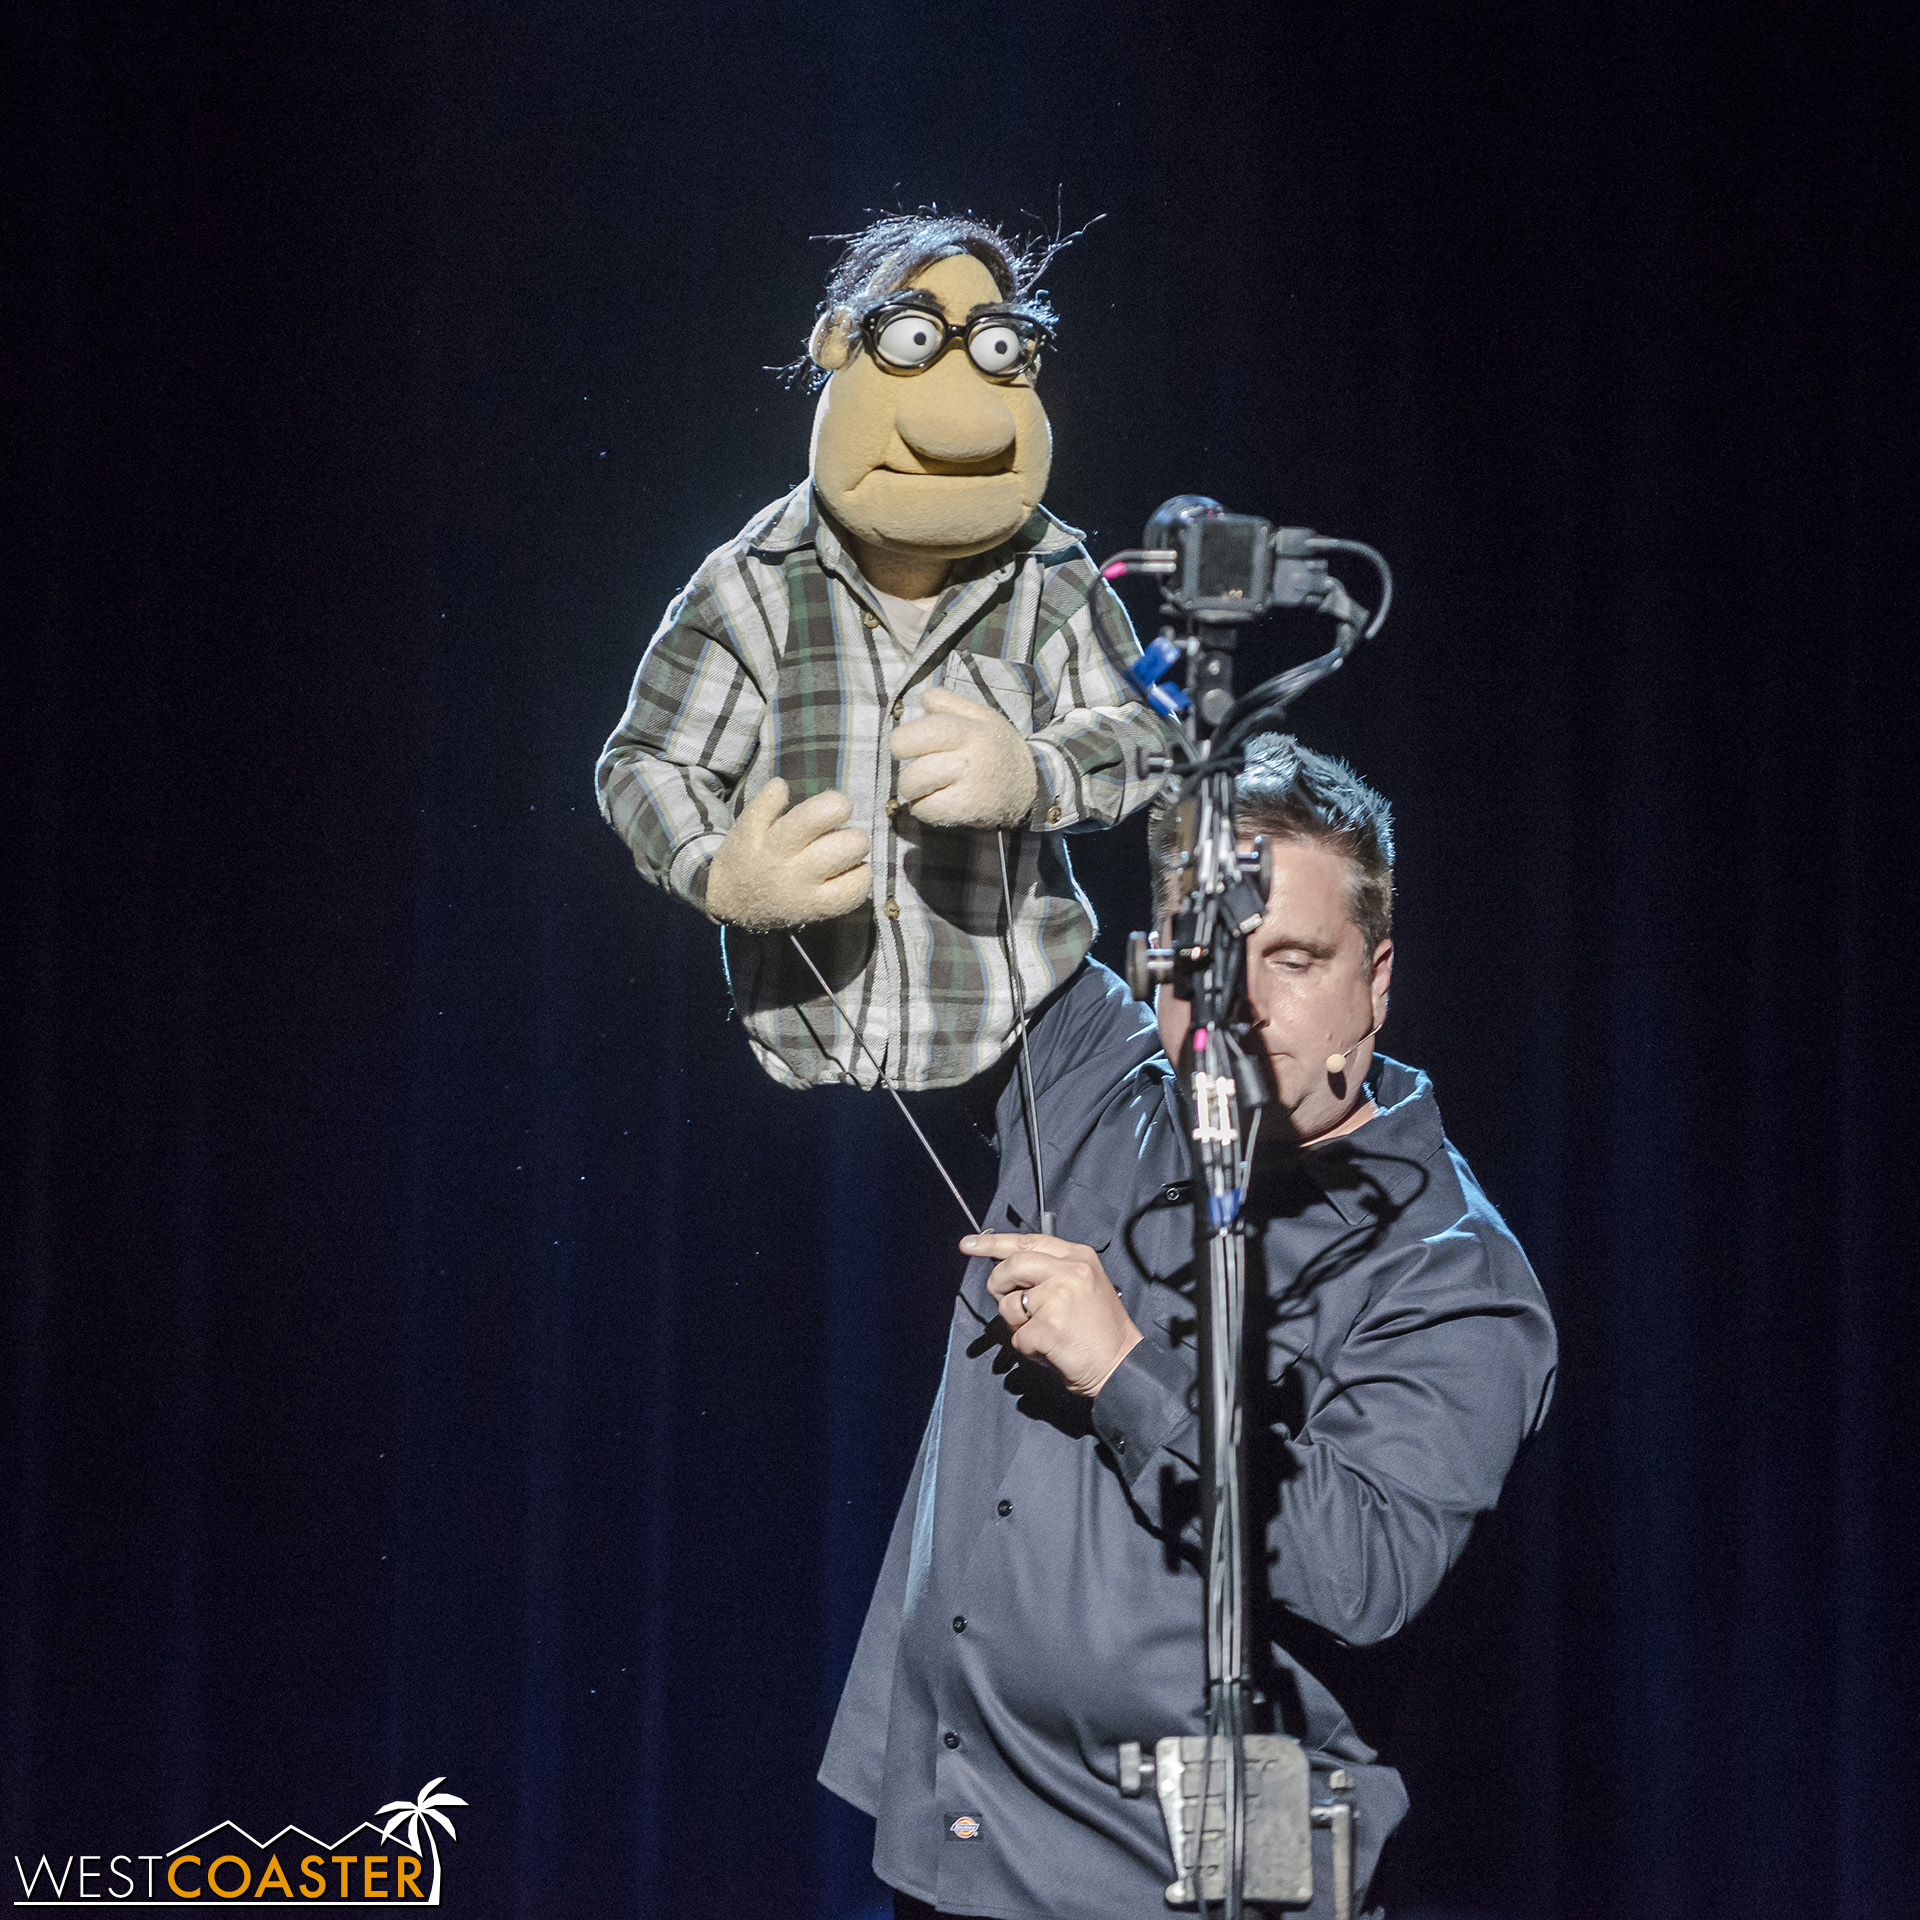 Grant Baciocco's Muppet explains what Puppet Up is all about.